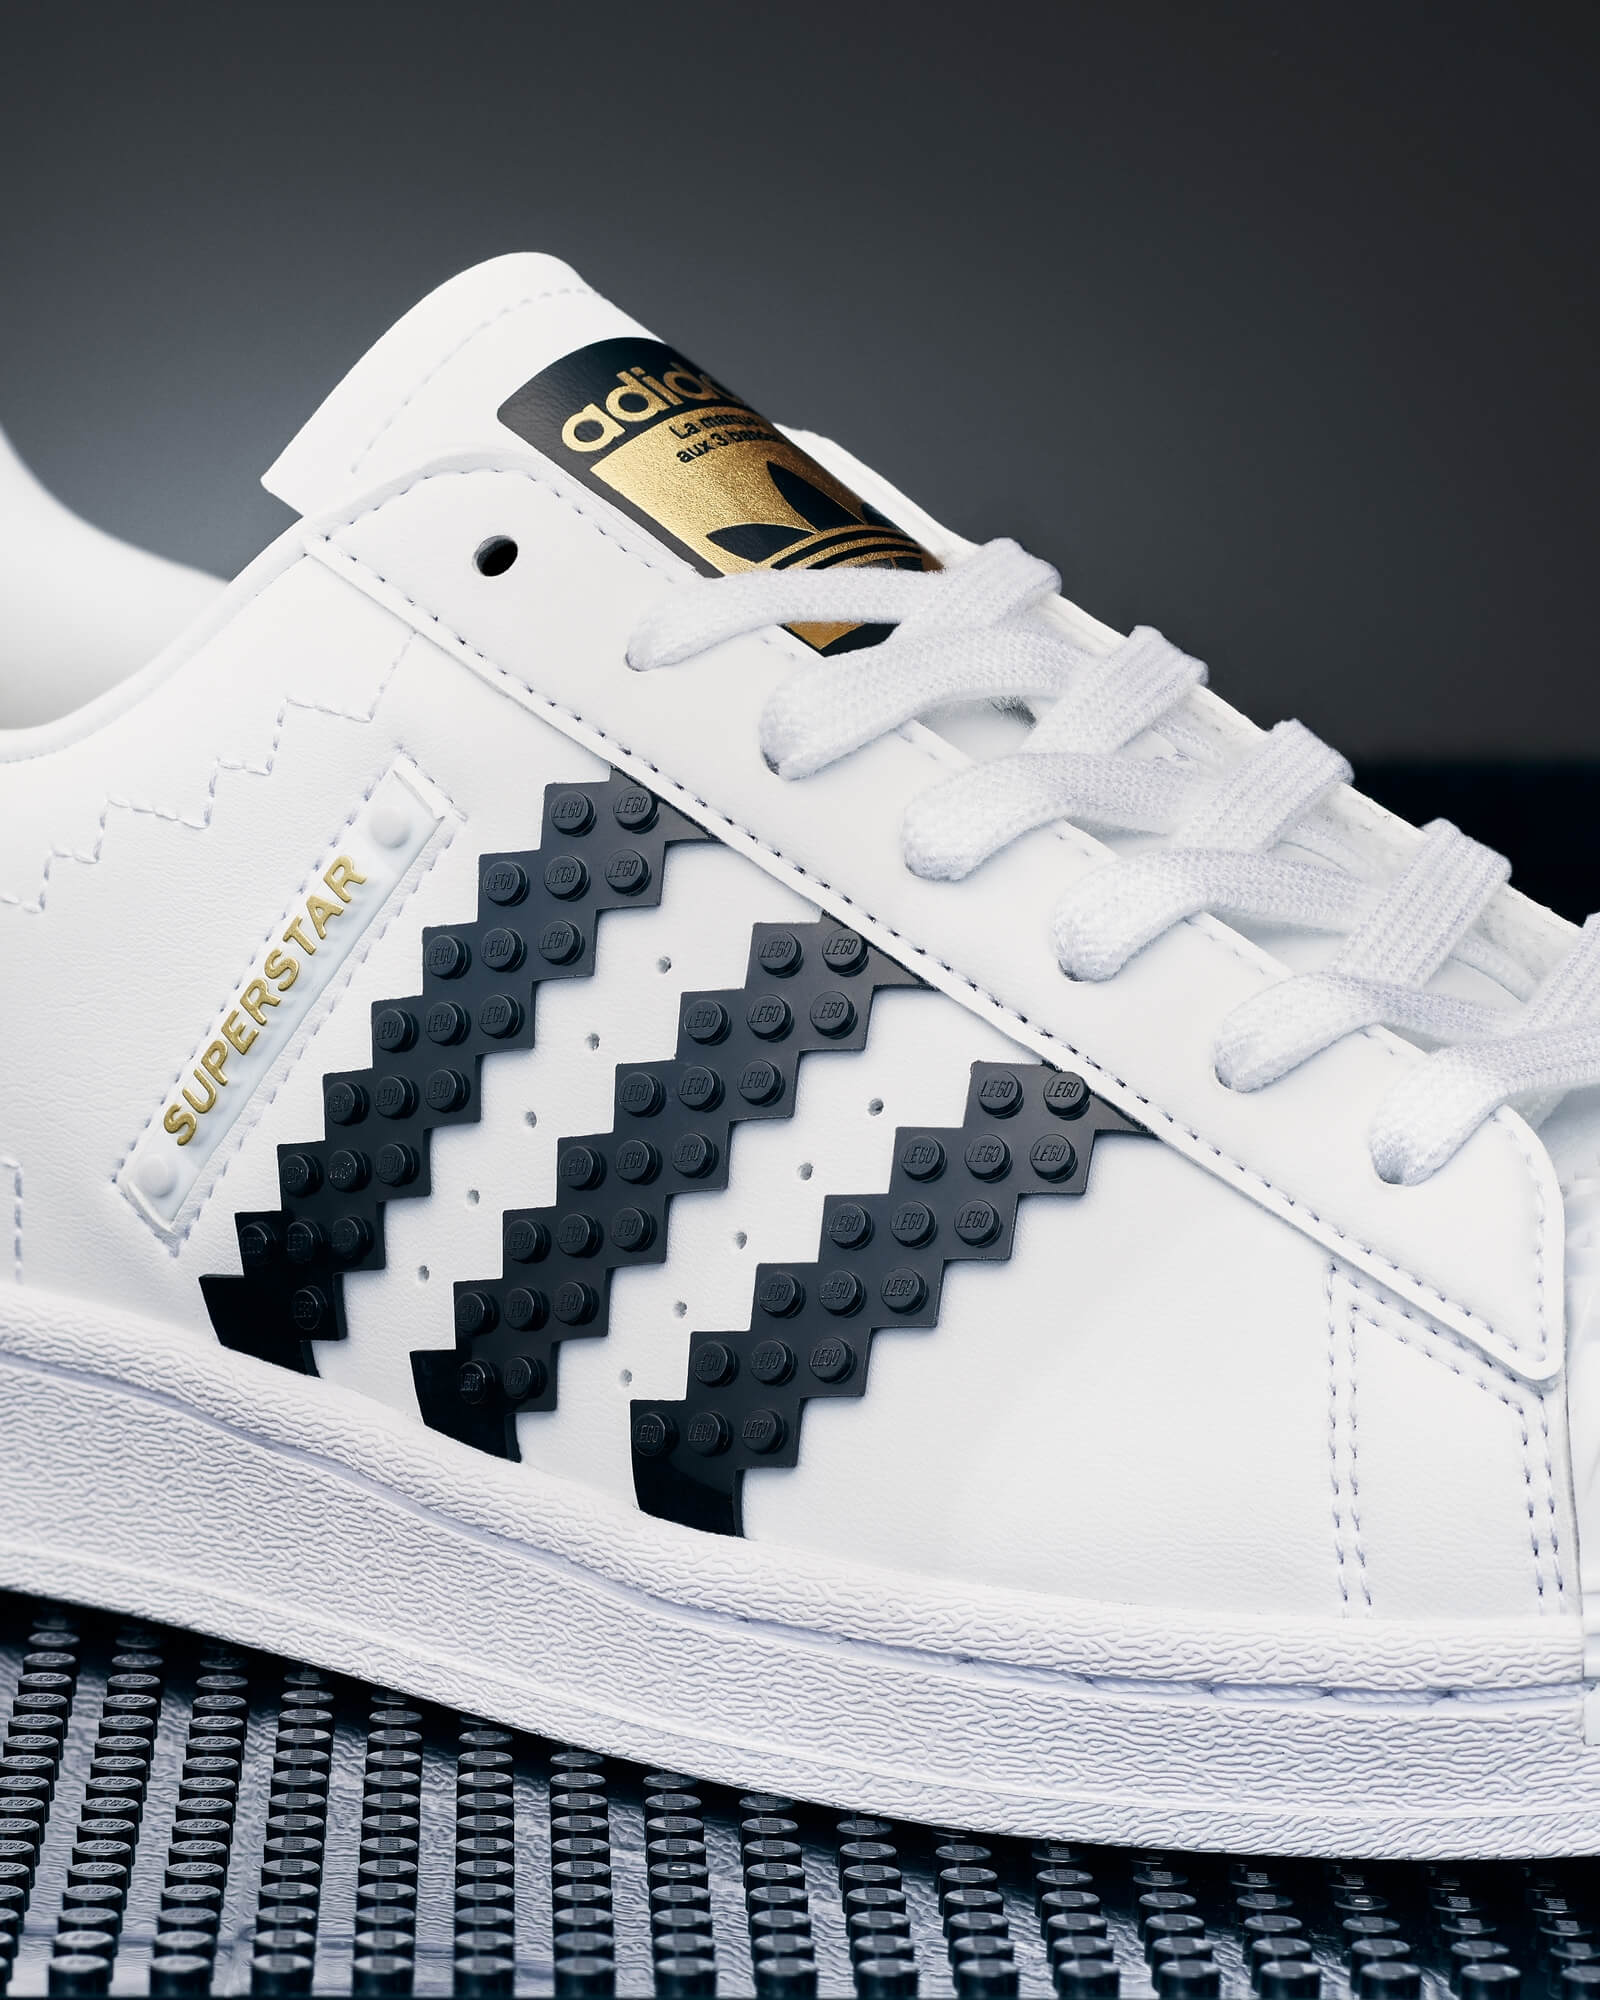 The Brand with the 3 stripes (made of Lego)